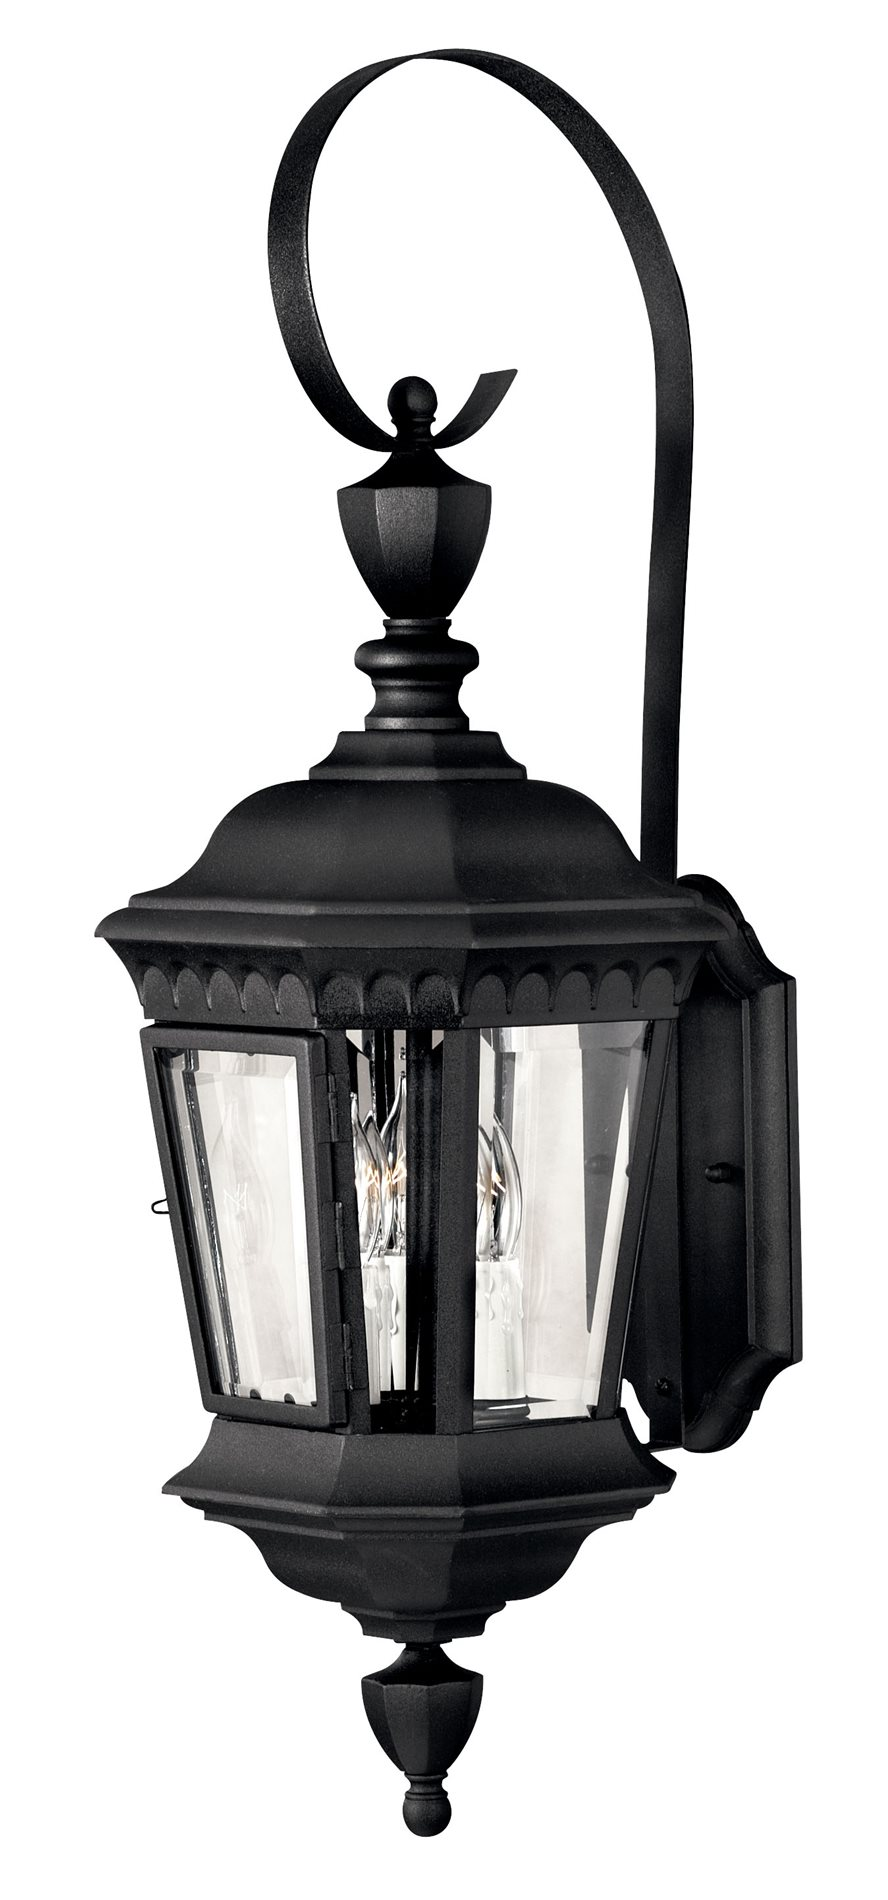 Hinkley Lighting 1704bk Camelot Traditional Outdoor Wall